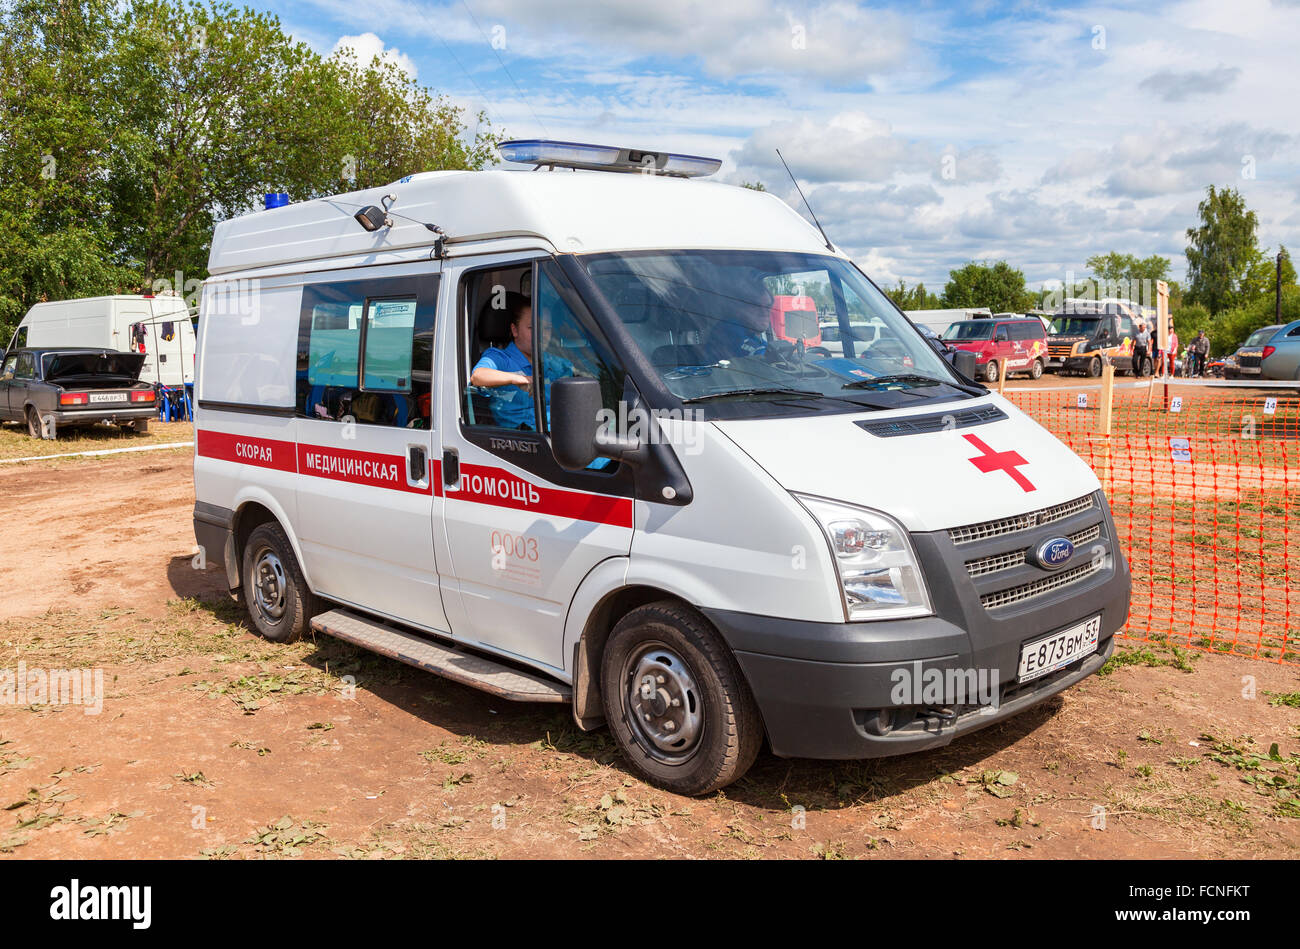 Ambulance car parked up in the rural street. Text on russian: 'Acute care' - Stock Image